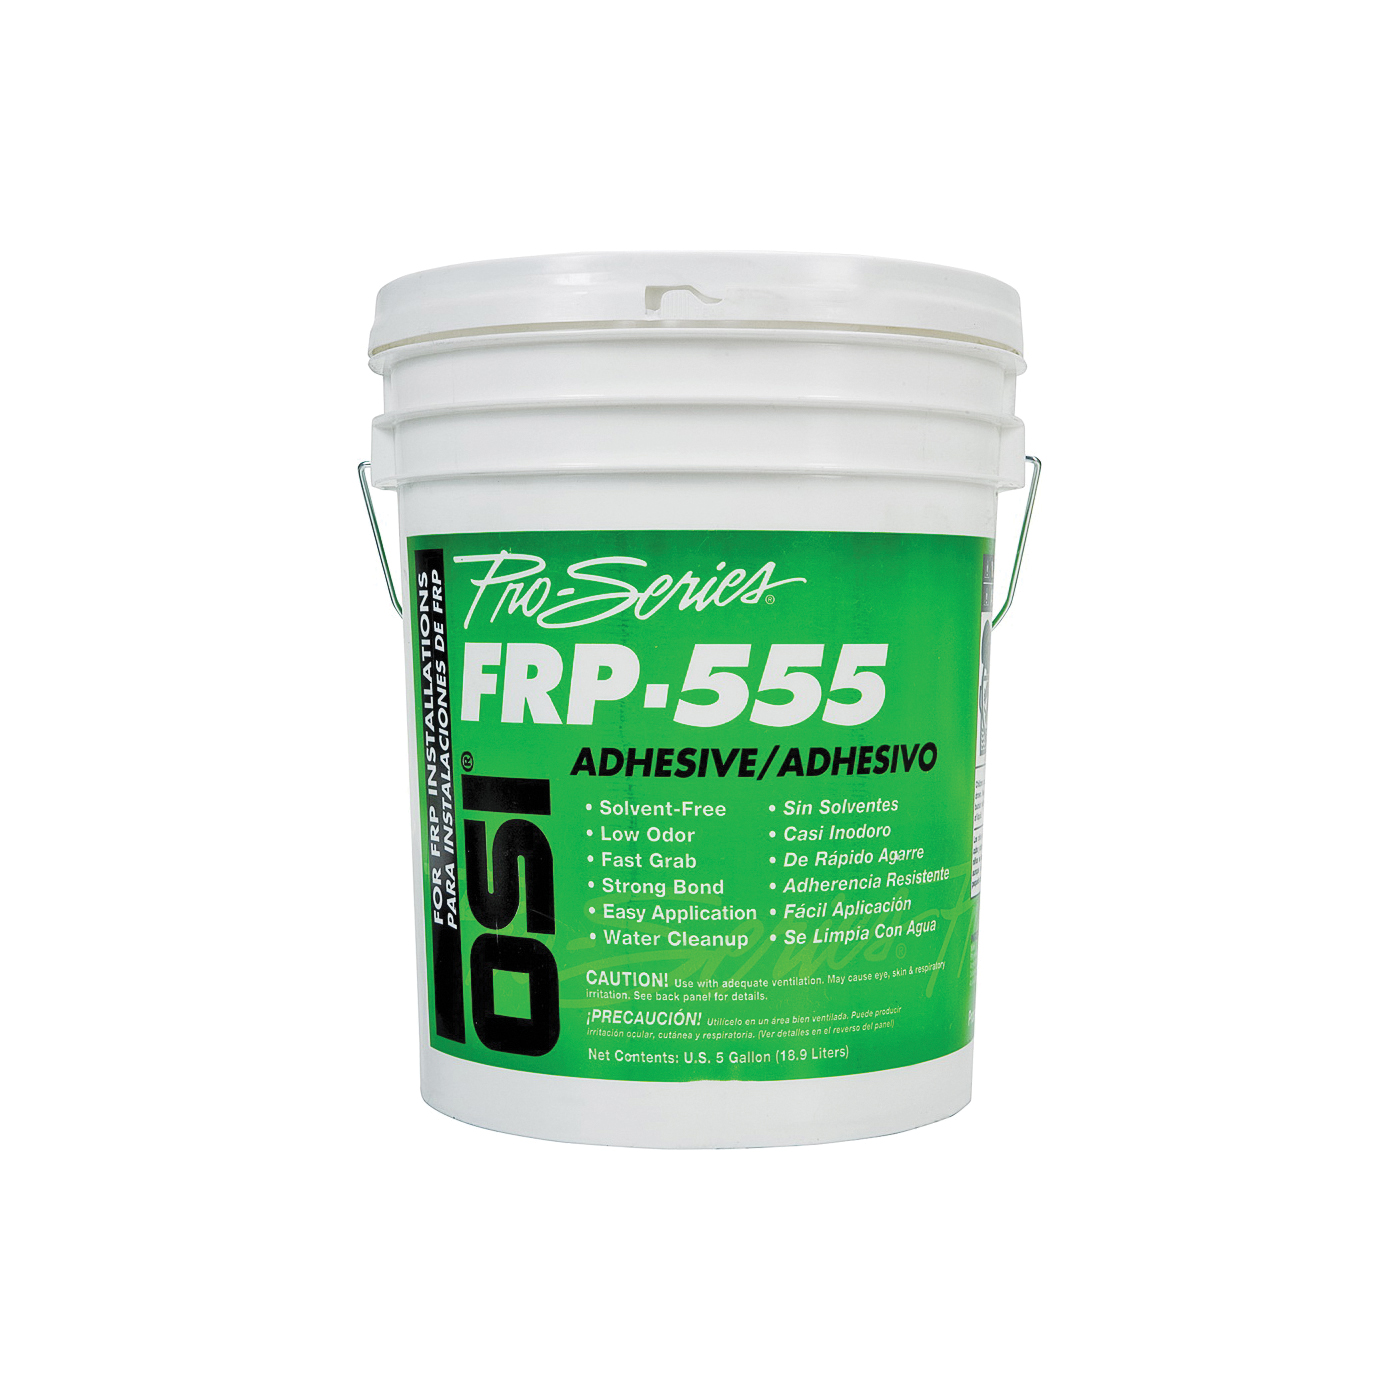 Picture of OSI 827655 Panel Adhesive, Off-White, 5 gal Package, Pail